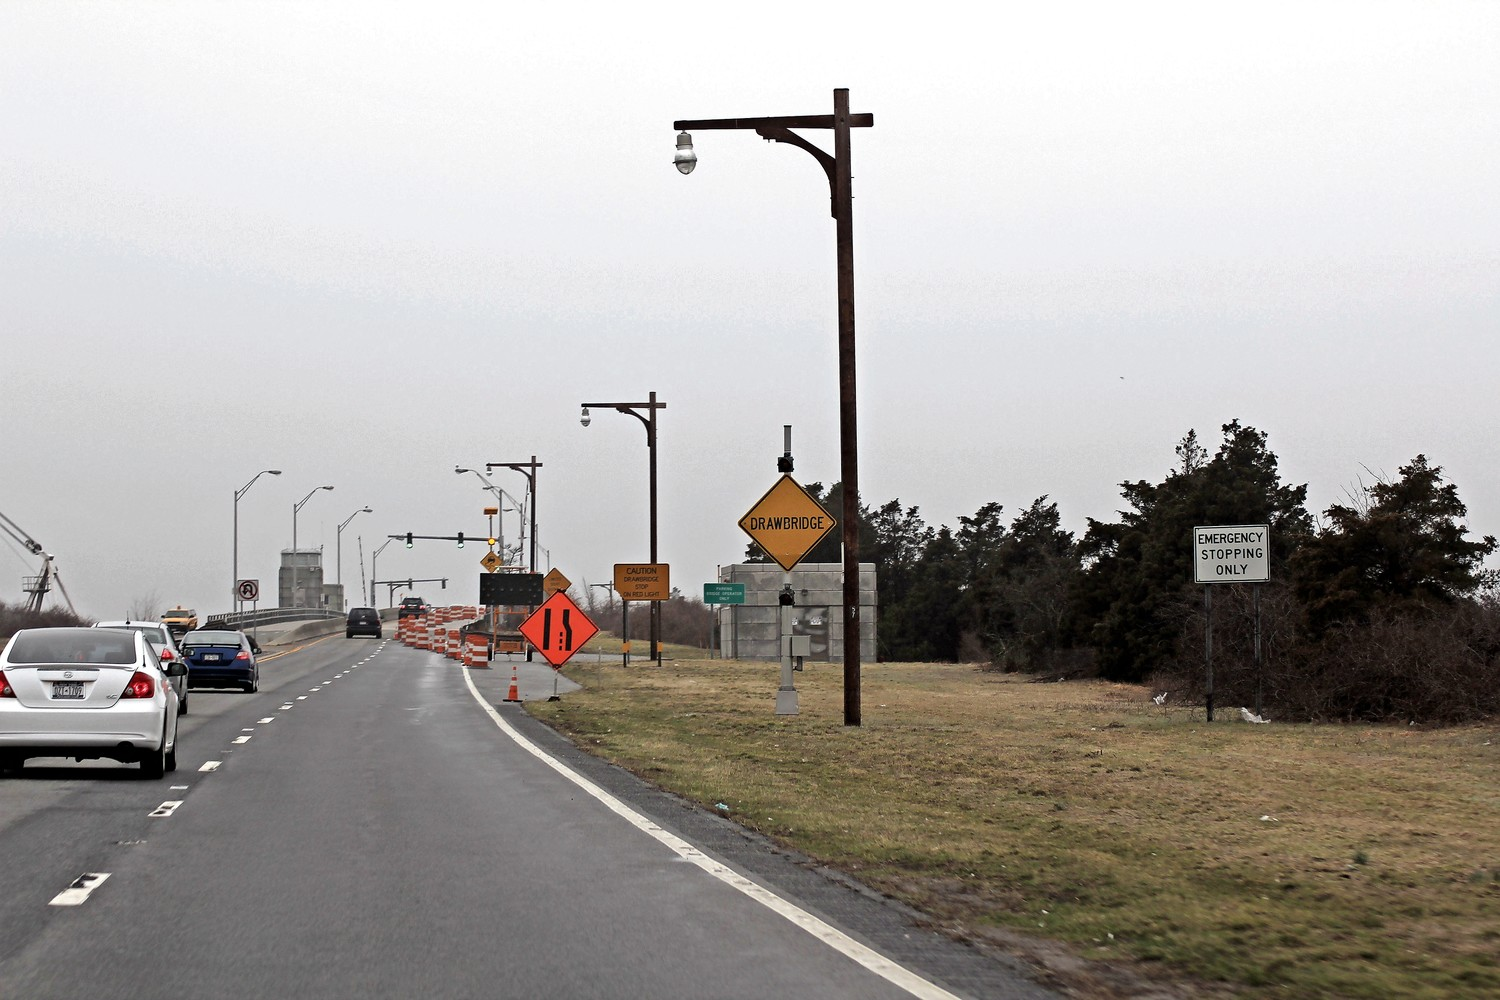 A portion of the Meadowbrook Parkway was set to close later this month as state highway workers repair the Loop Parkway and Meadowbrook Parkway bridges. The DOT said on Wednesday that the closure has been canceled.